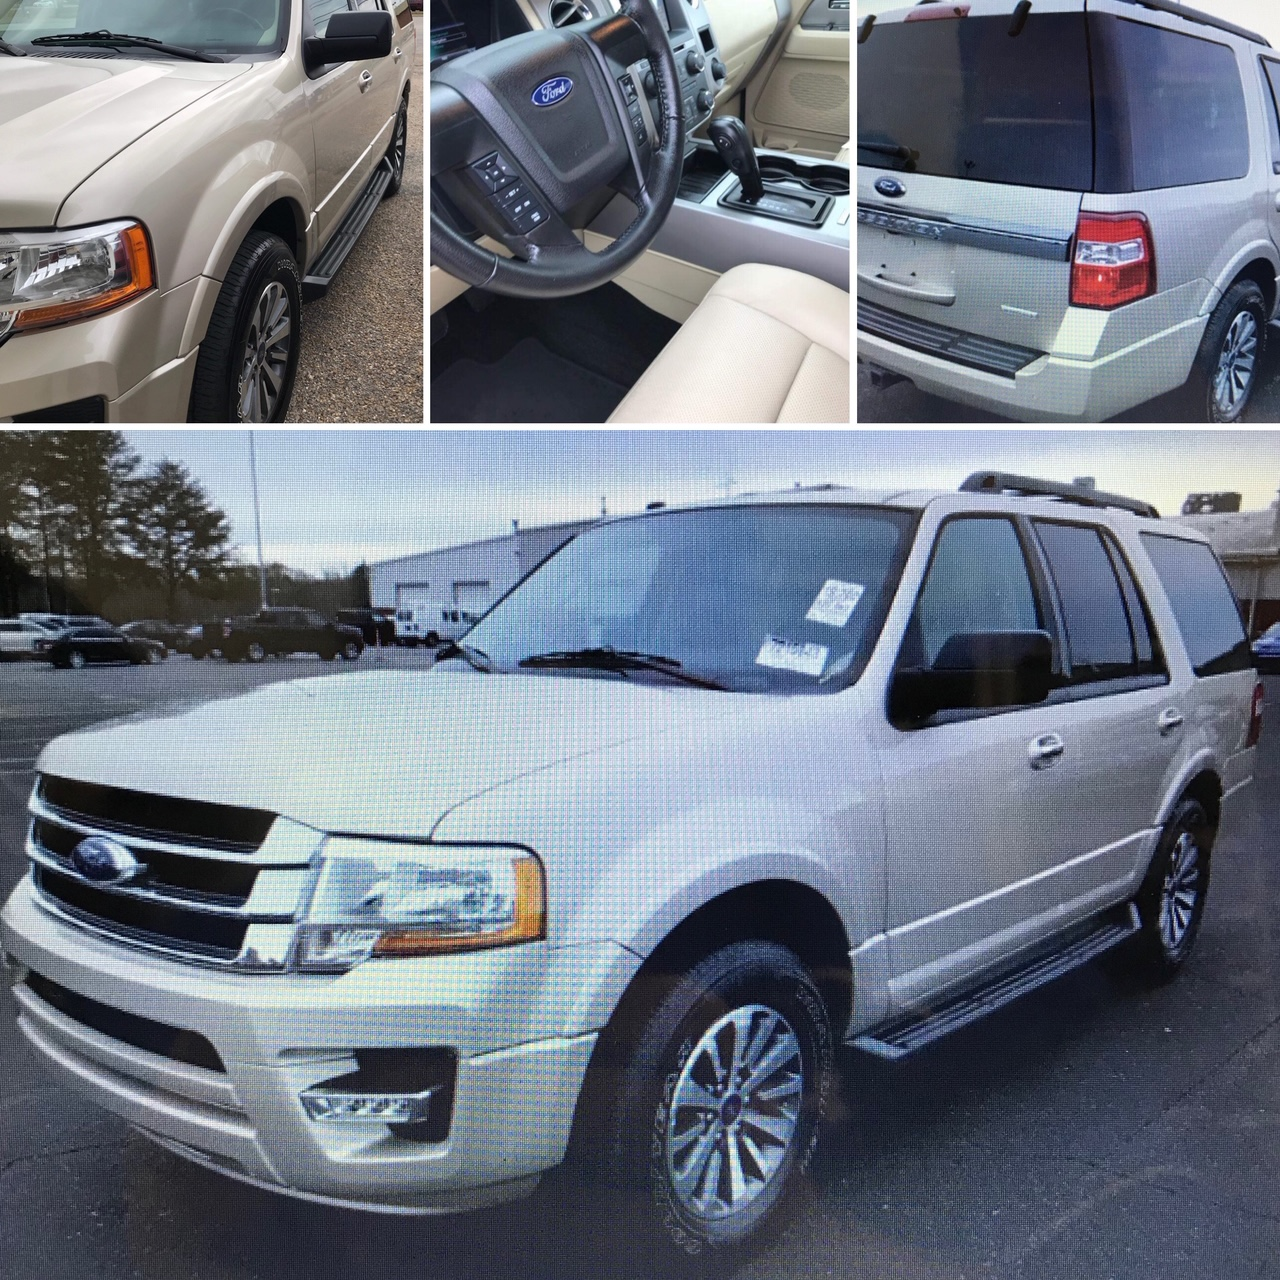 Stolen Ford Expedition